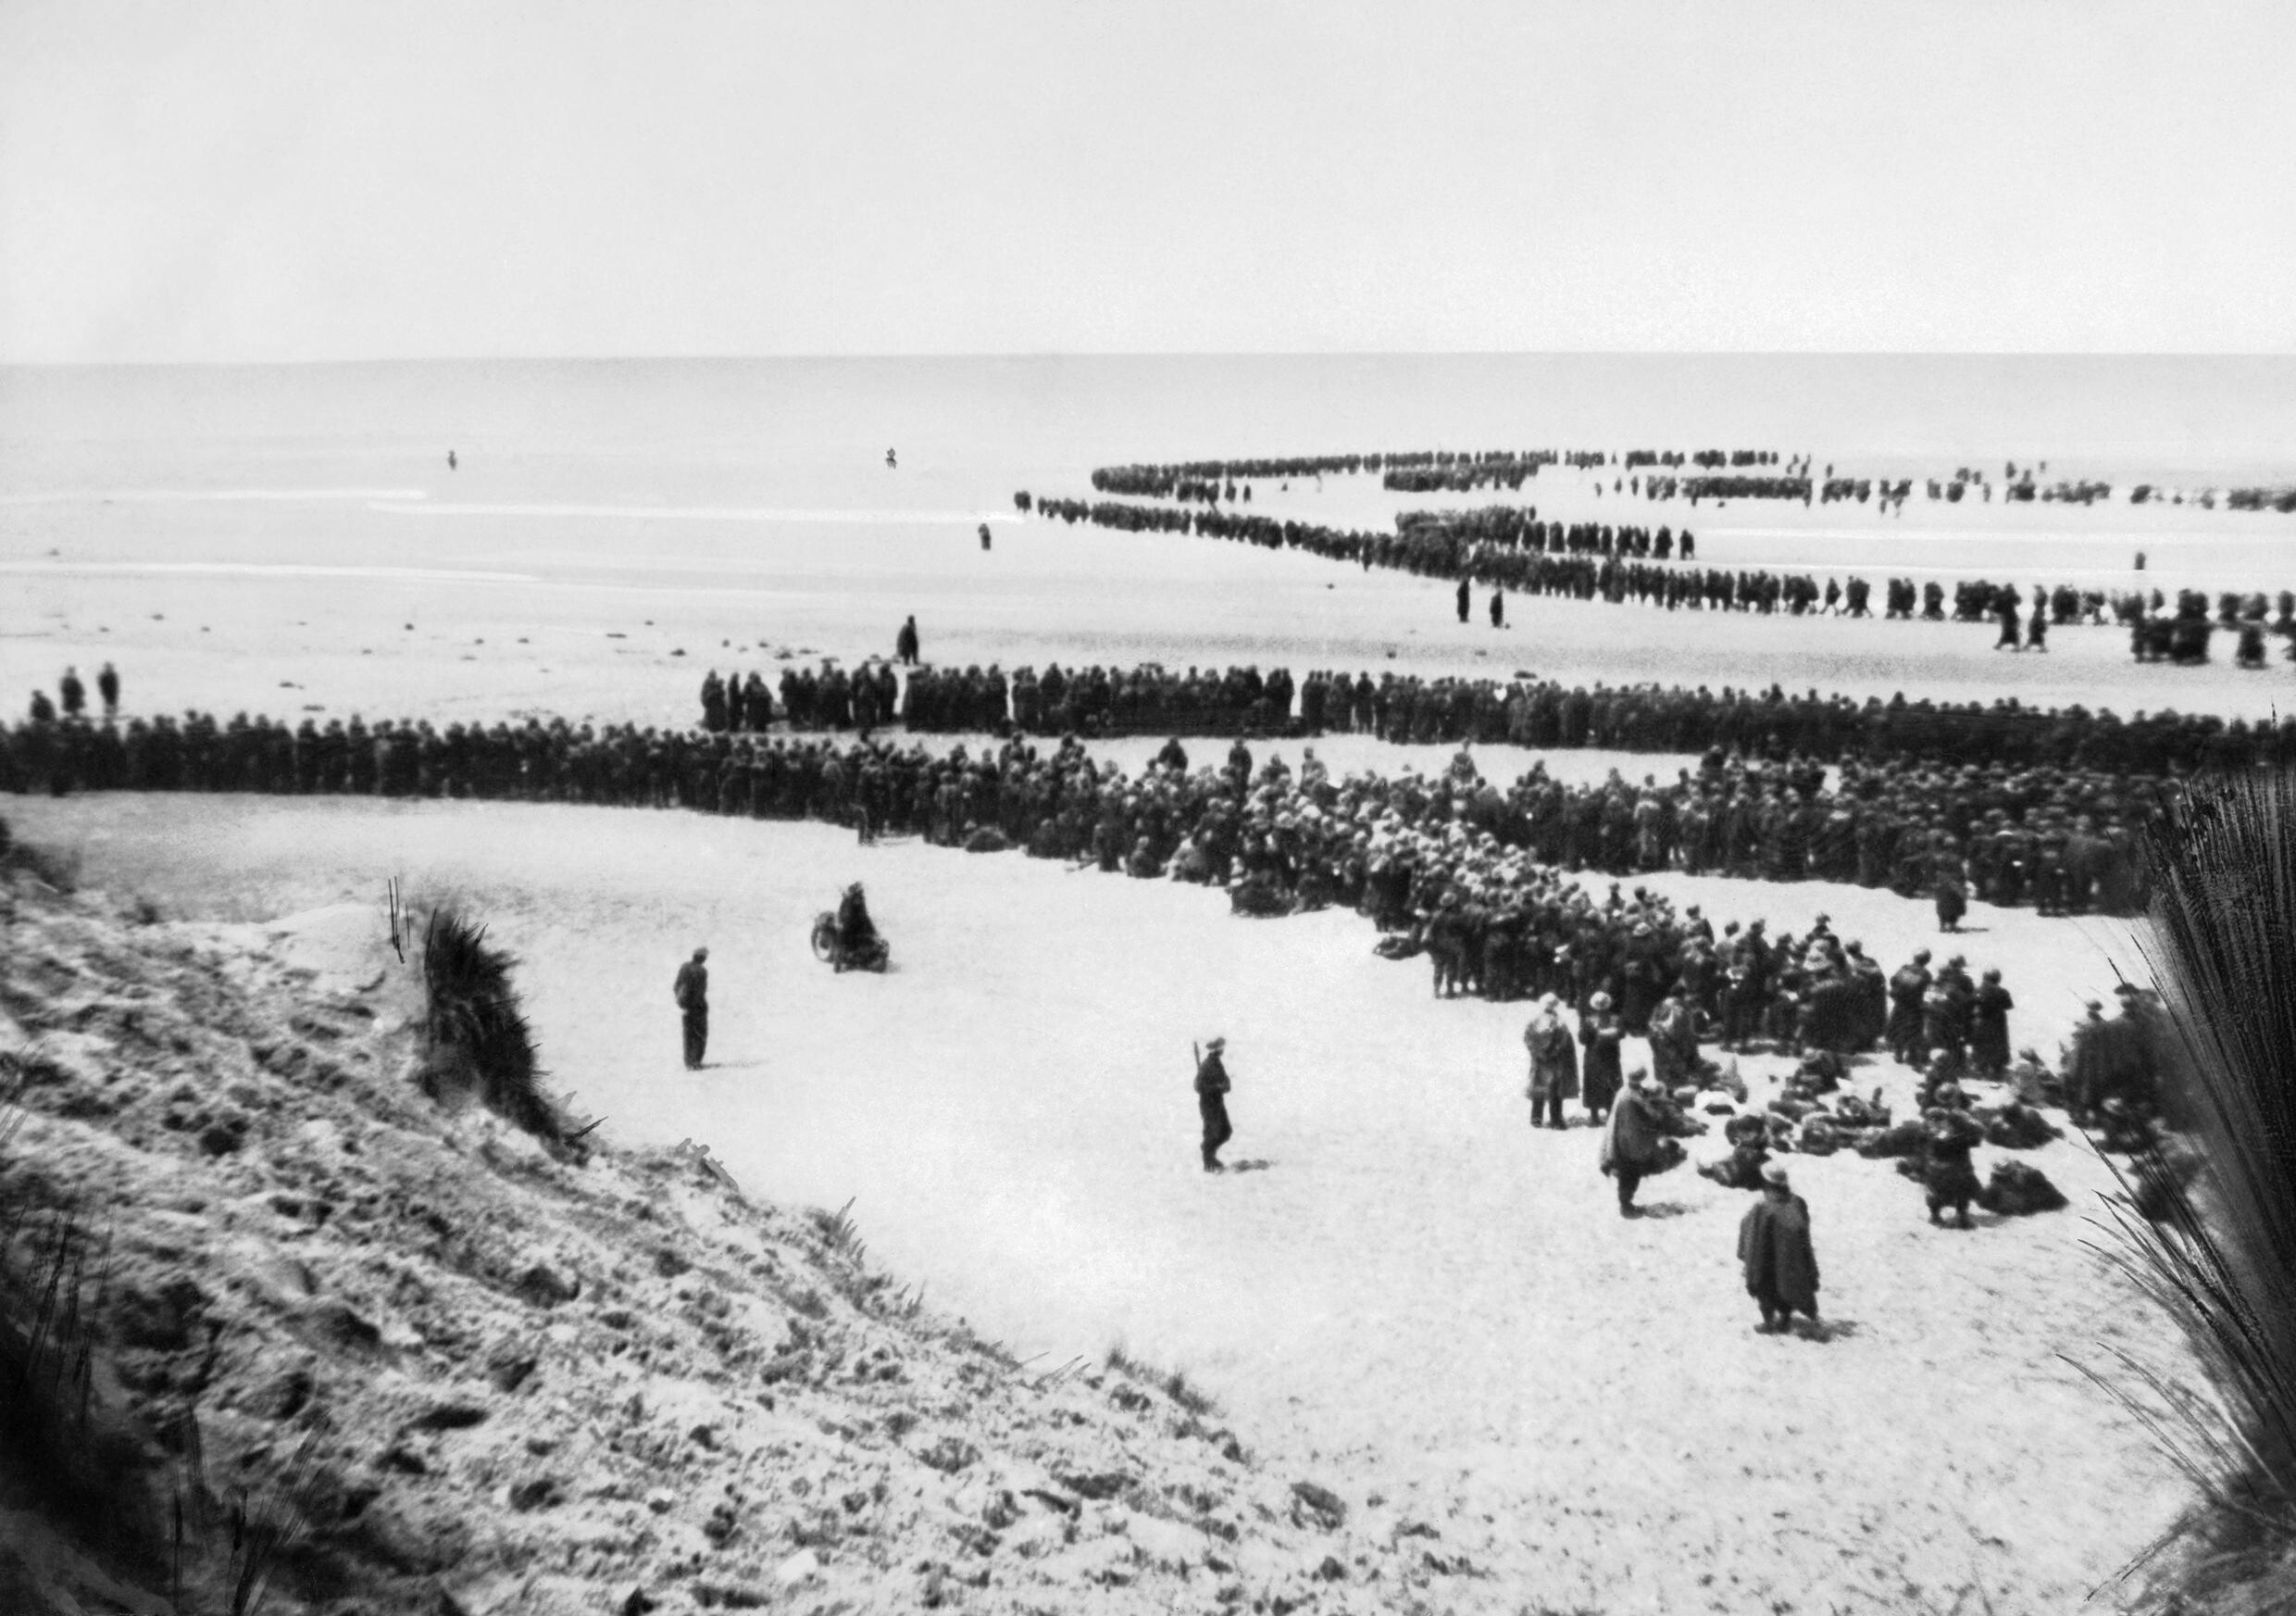 https://upload.wikimedia.org/wikipedia/commons/8/88/Dunkirk_26-29_May_1940_NYP68075.jpg